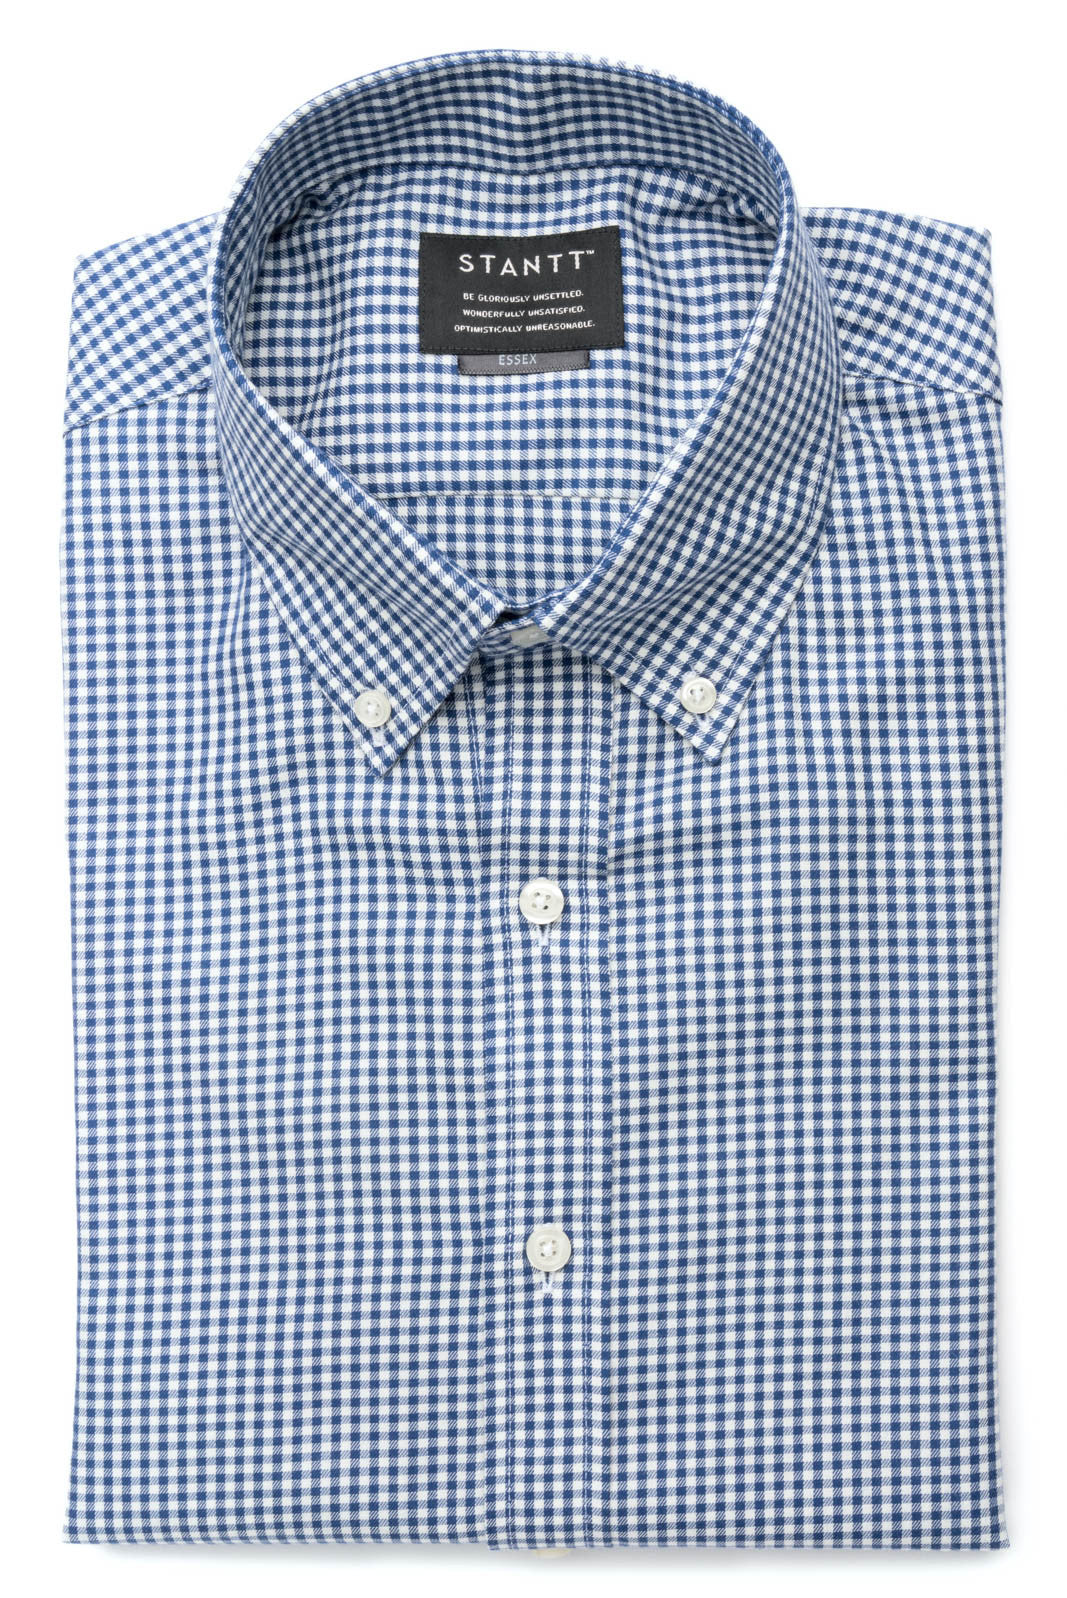 Navy Mini Gingham: Modified-Spread Collar, Barrel Cuff